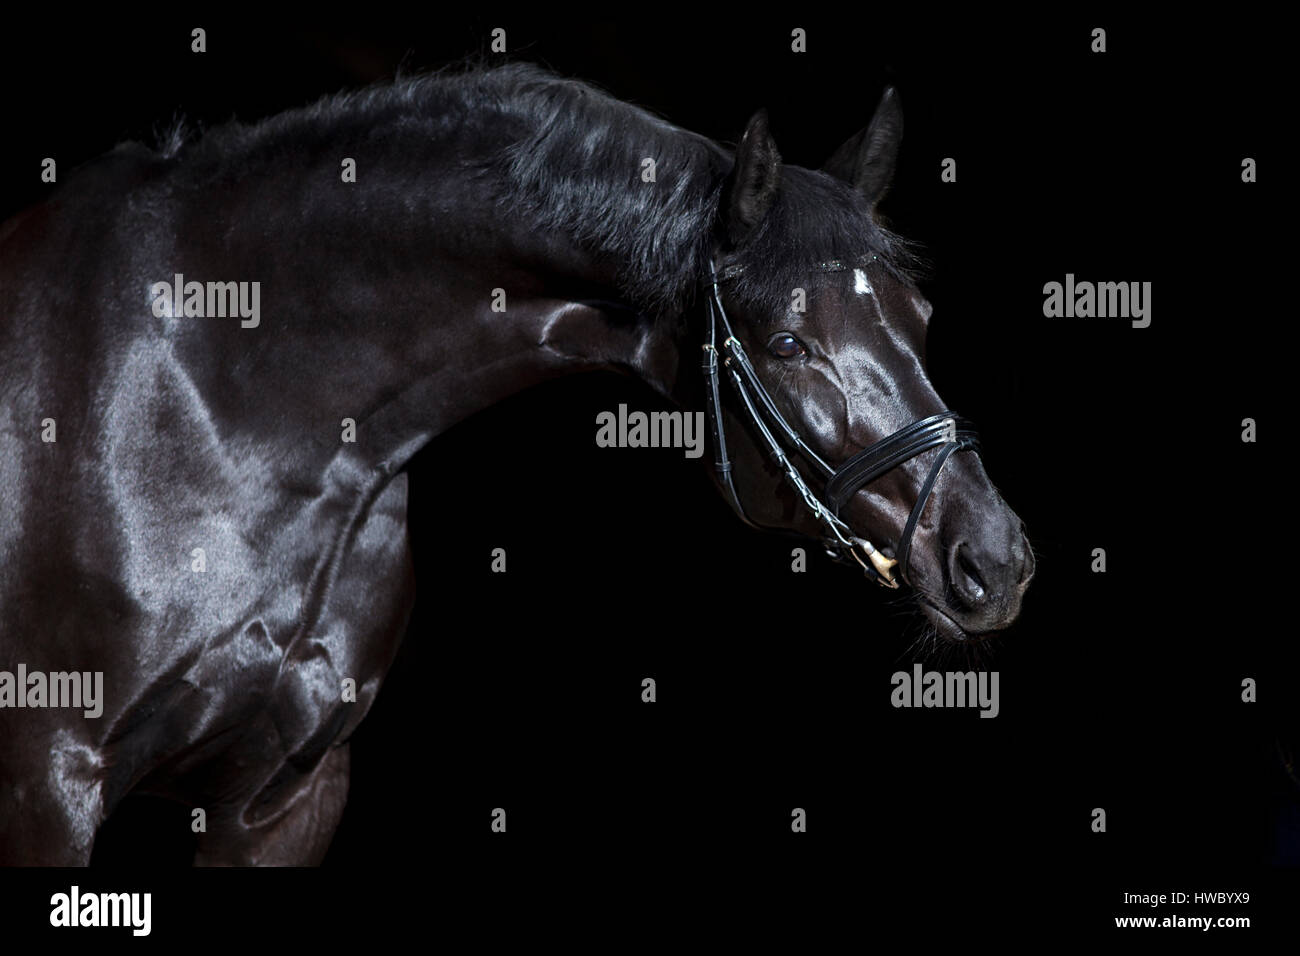 black horse on black background. beautiful shiny warmblood stallion with bridle. - Stock Image